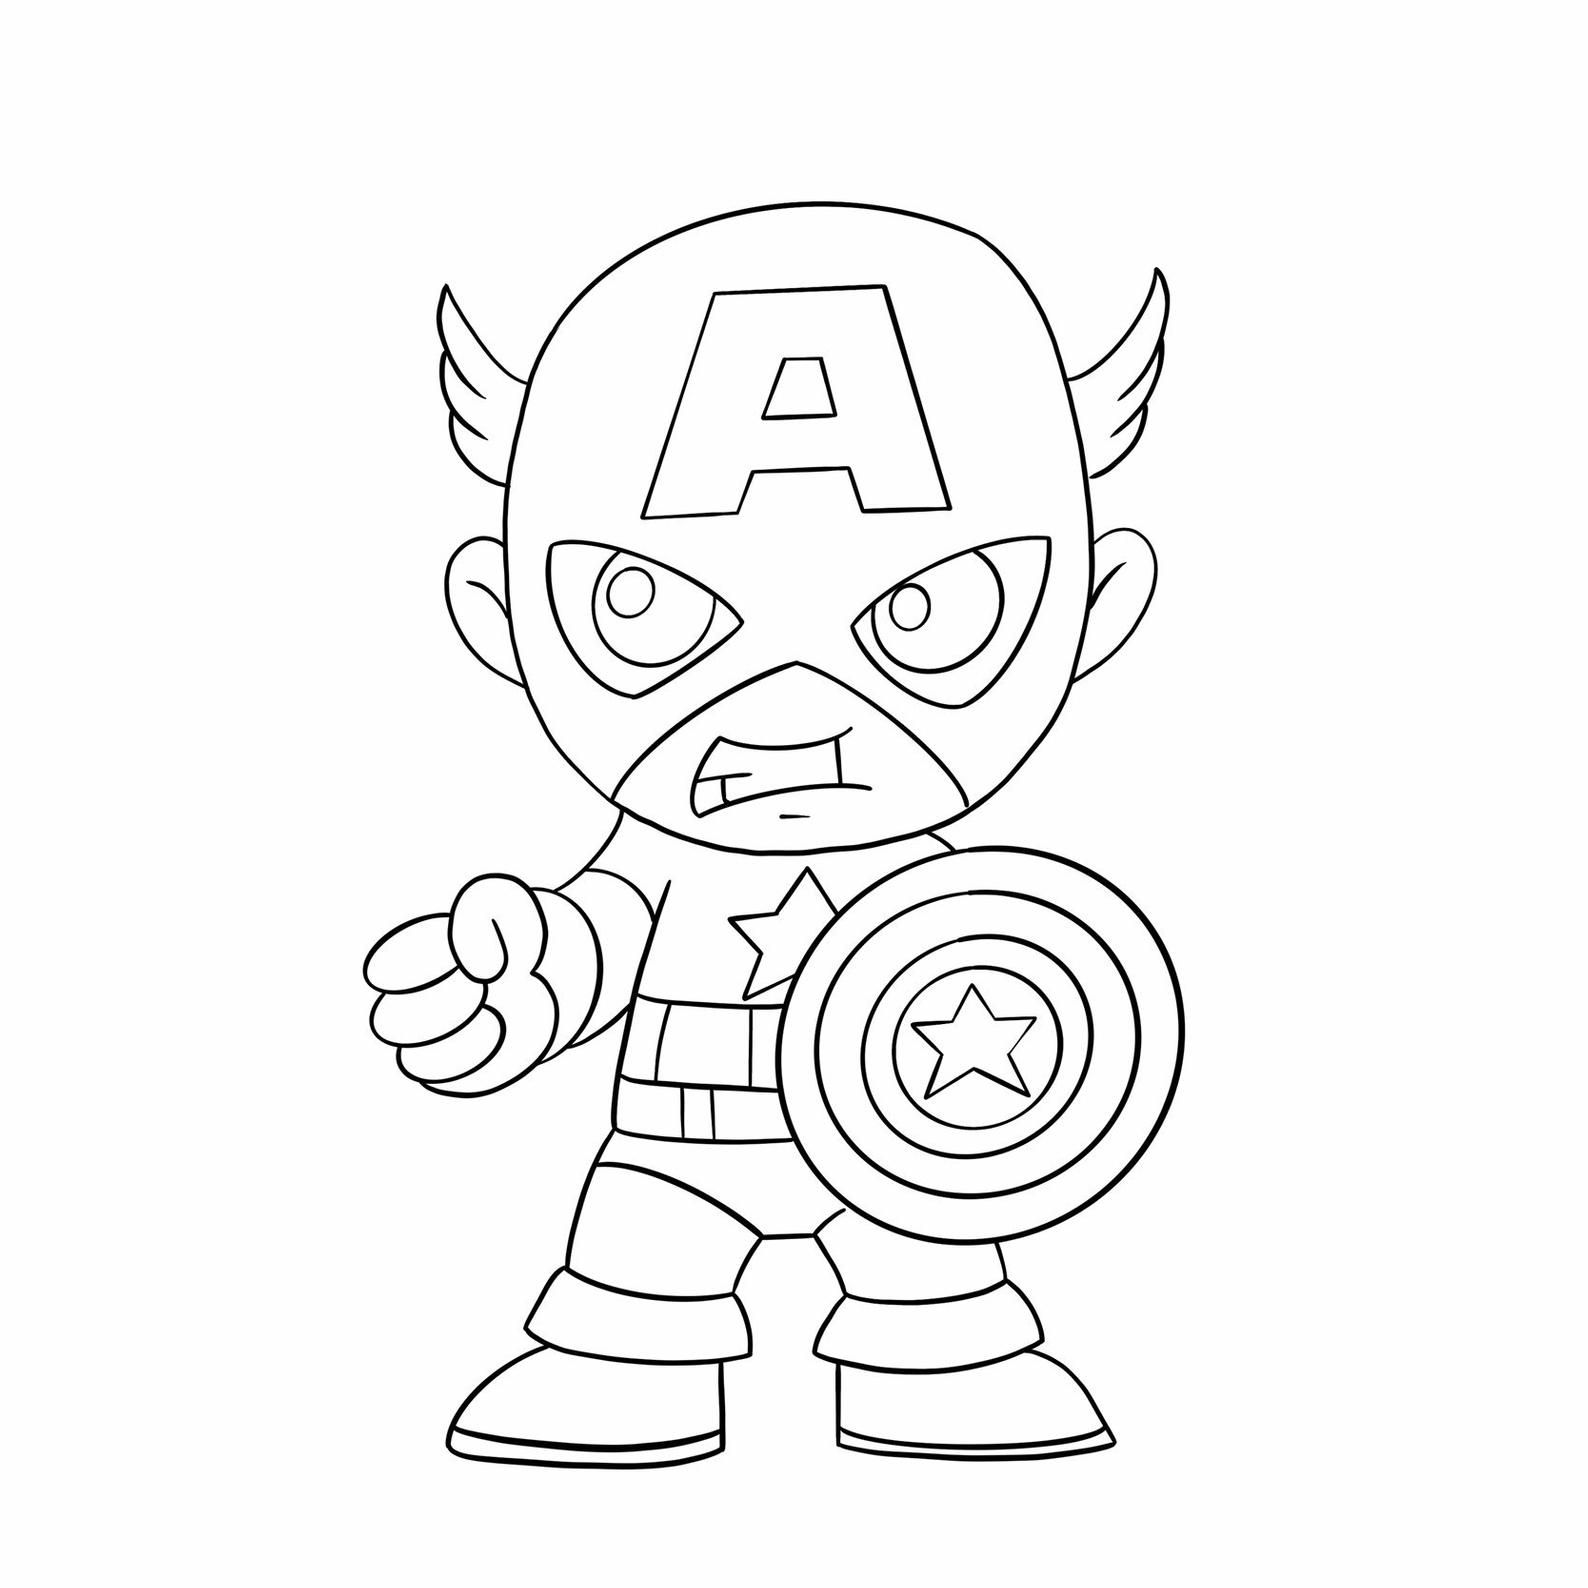 Png Iron Man Captain America Captain Marvel Black Widow Shazam Clipart Avengers Endgame Free Coloring Children Gift Dc Super Hero Coloring Sheets Drawing Superheroes Cartoon Coloring Pages